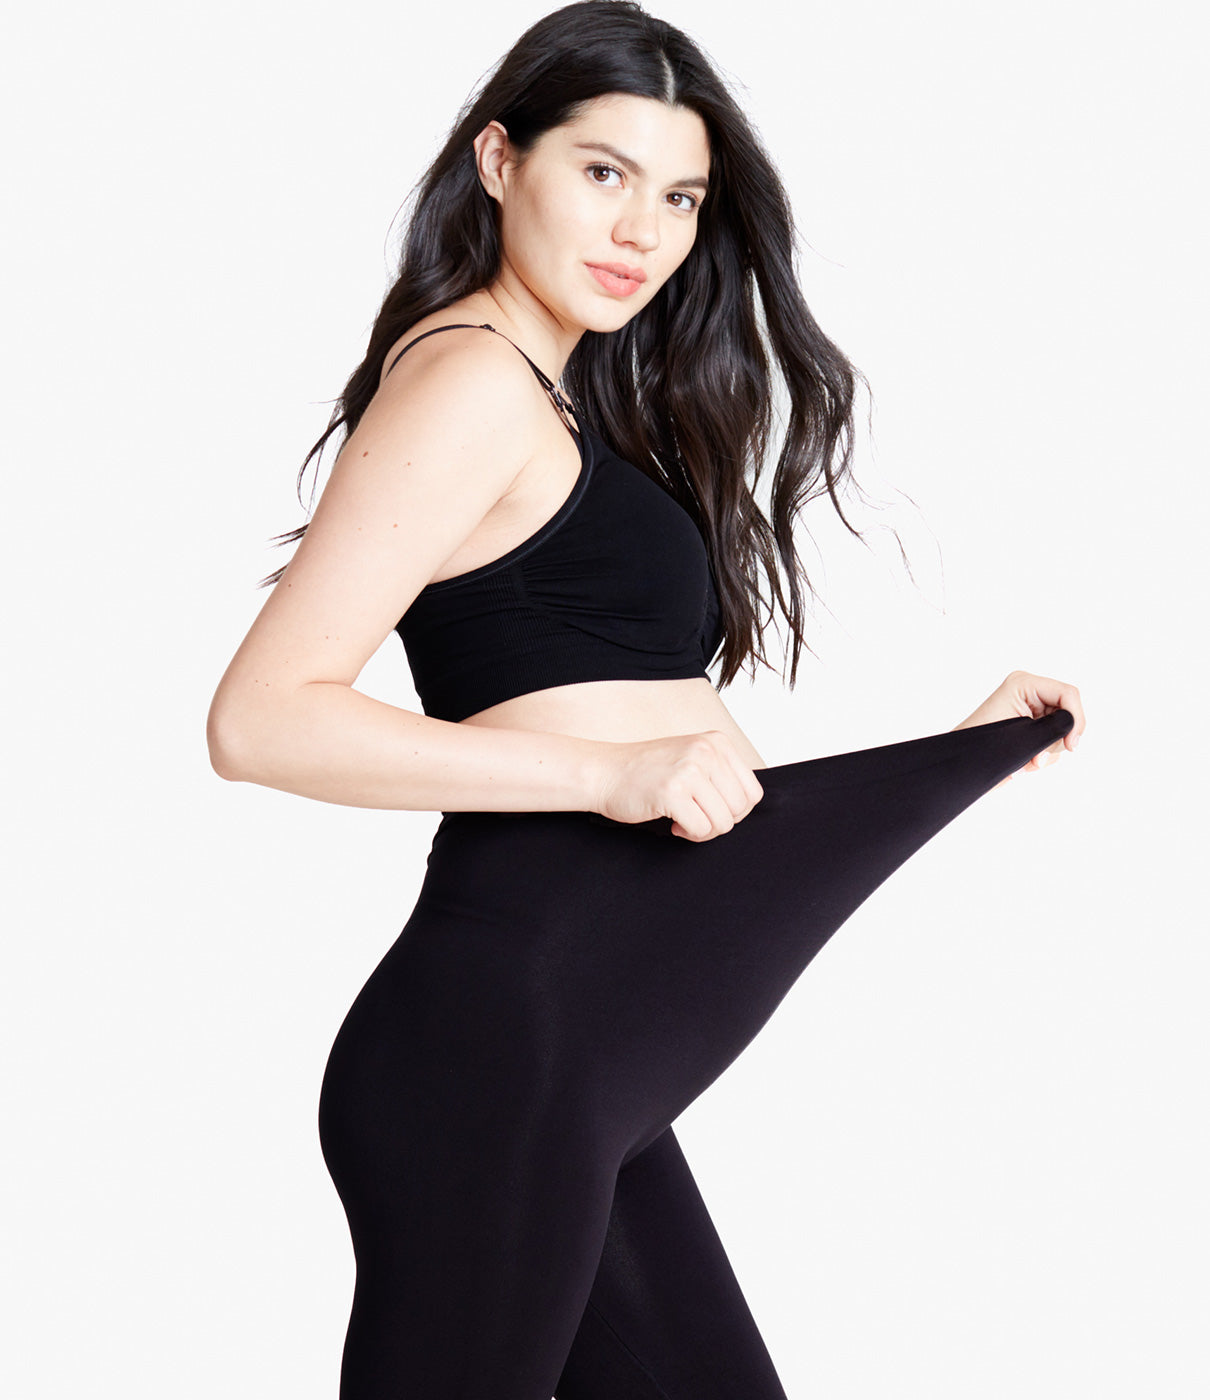 IN THE DETAILSFabricated to stretch and recover with your changing shape throughout pregnancy and postpartum.